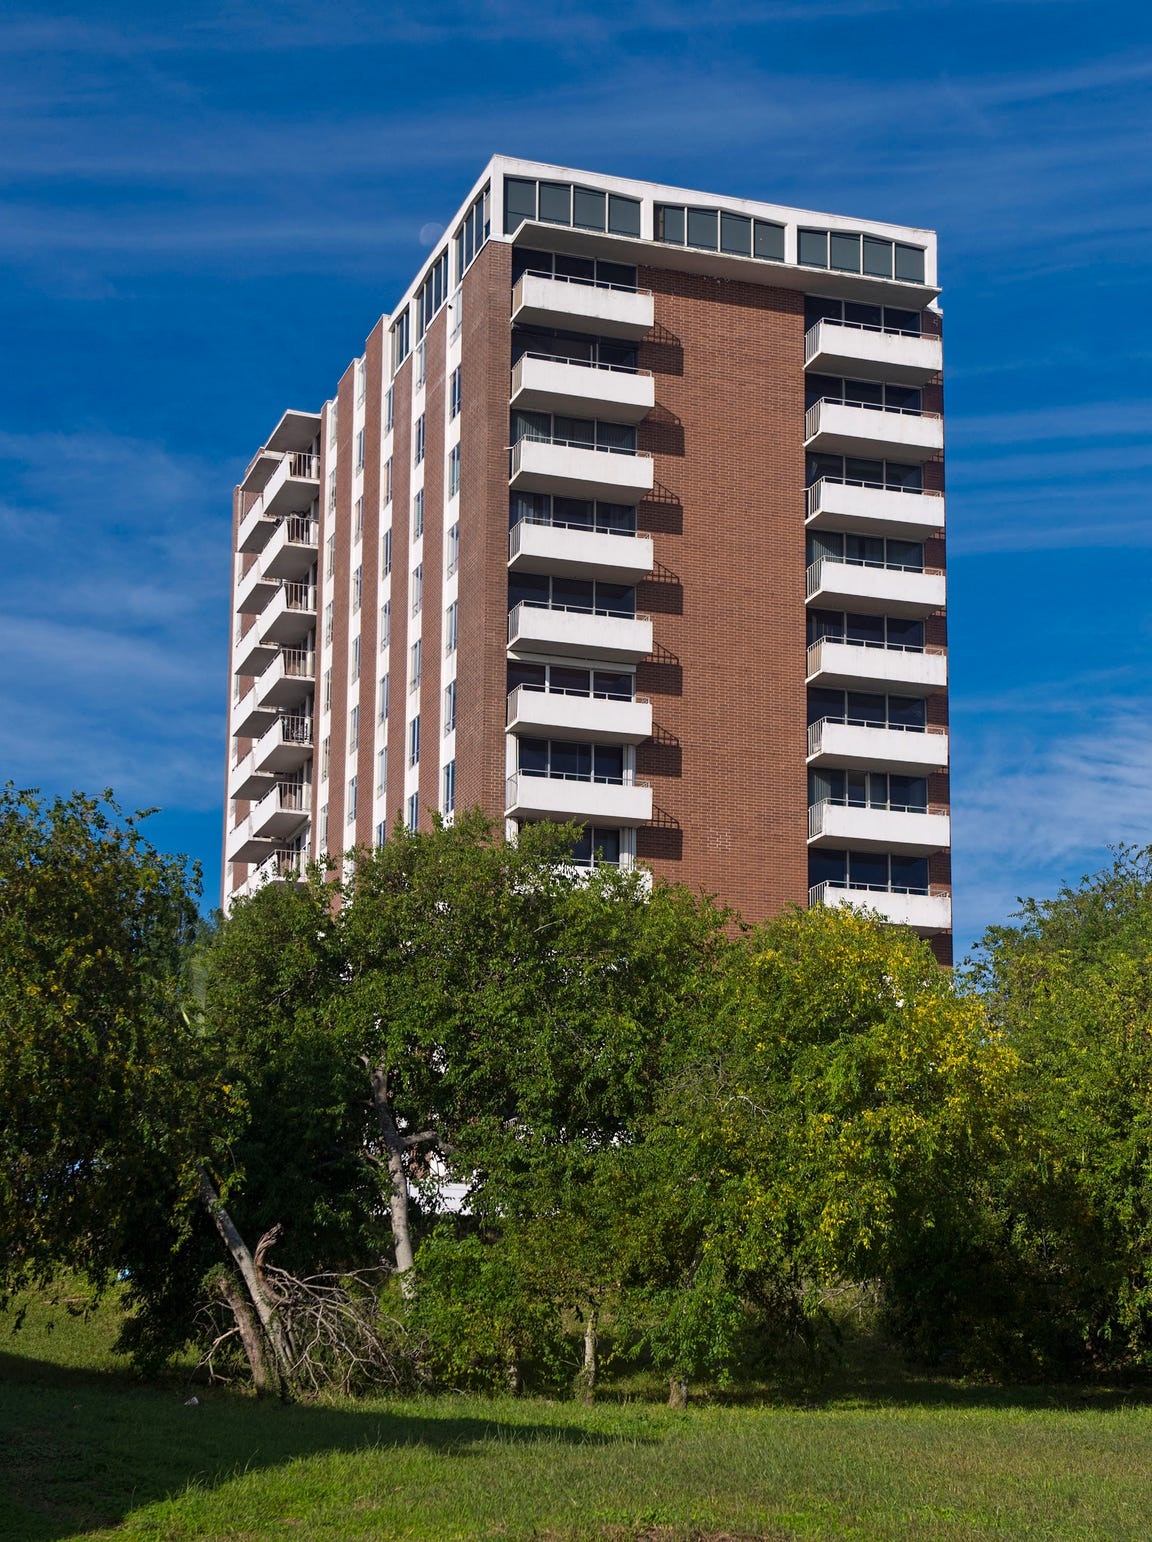 Perched atop a lush hillside overlooking Corpus Christi Bay, the architectural award winning Cliff House, constructed  in 1965 offers some of the best panoramic views of the waterfront and Downtown Marina.